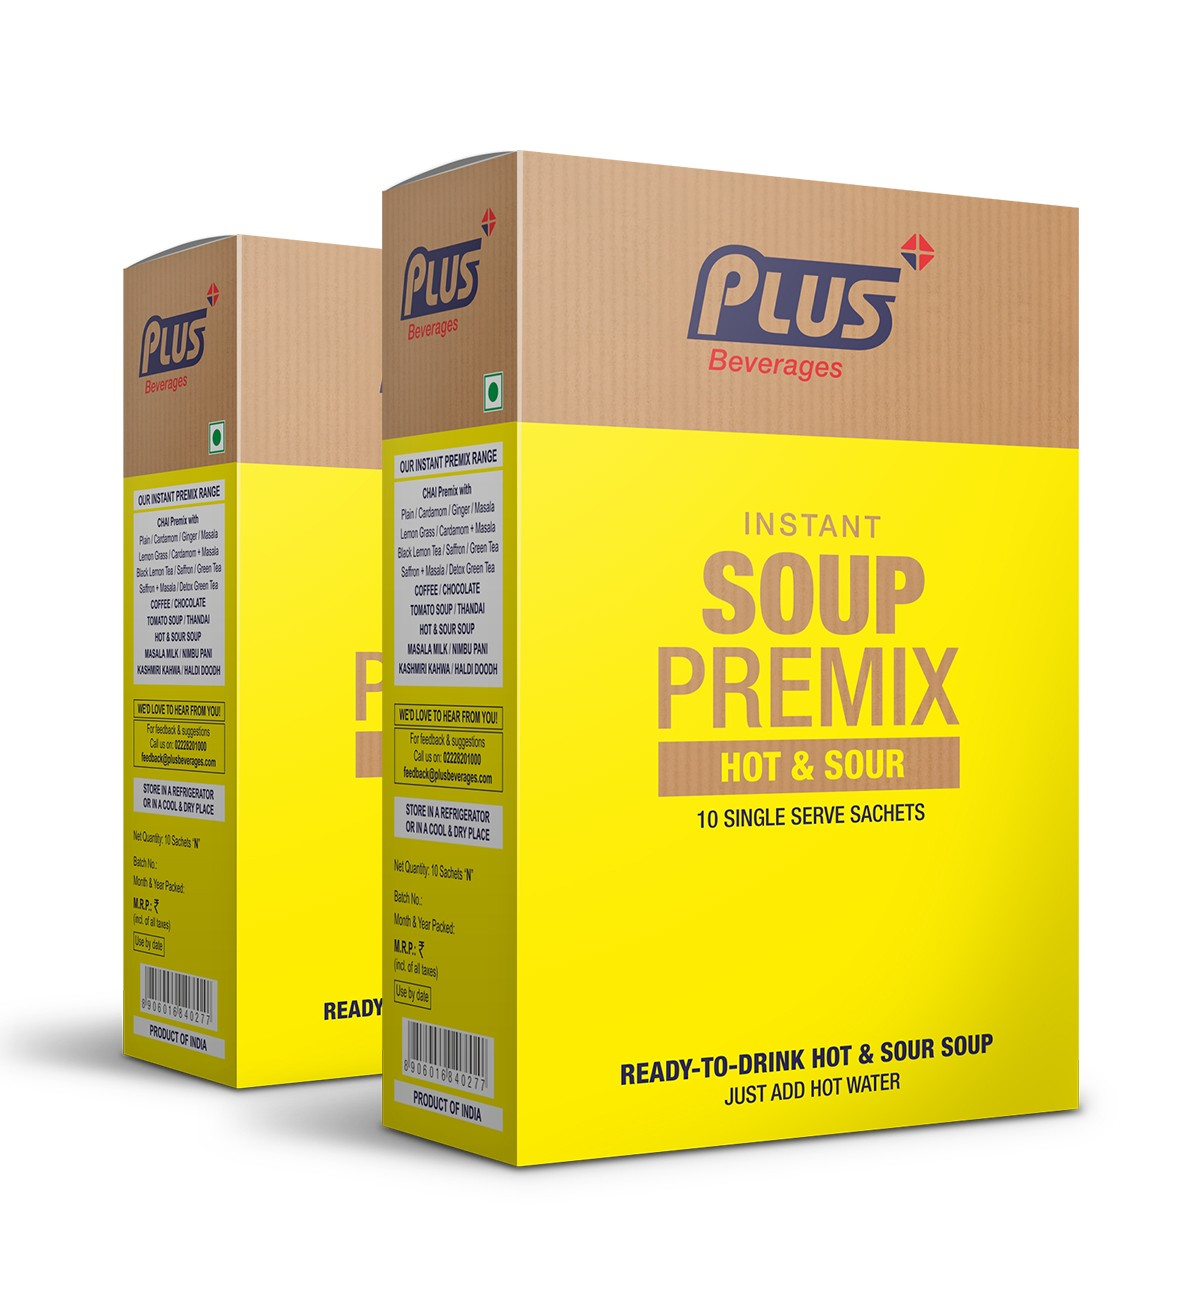 Get Instant Hotsour Soup Premix at best price - Free Shipping   Plus Beverages